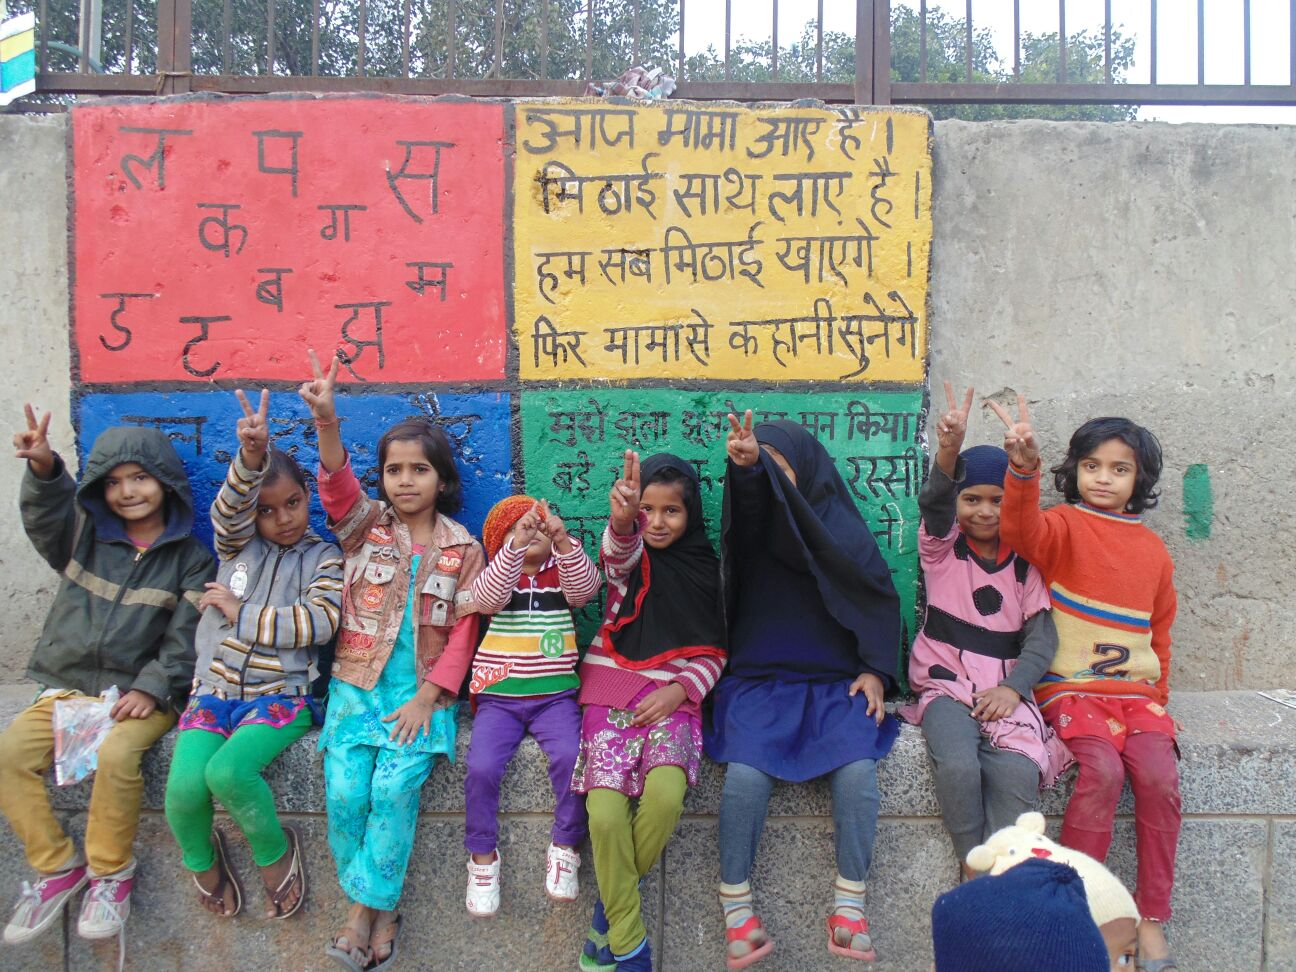 School-going kids in front of brightly painted wall